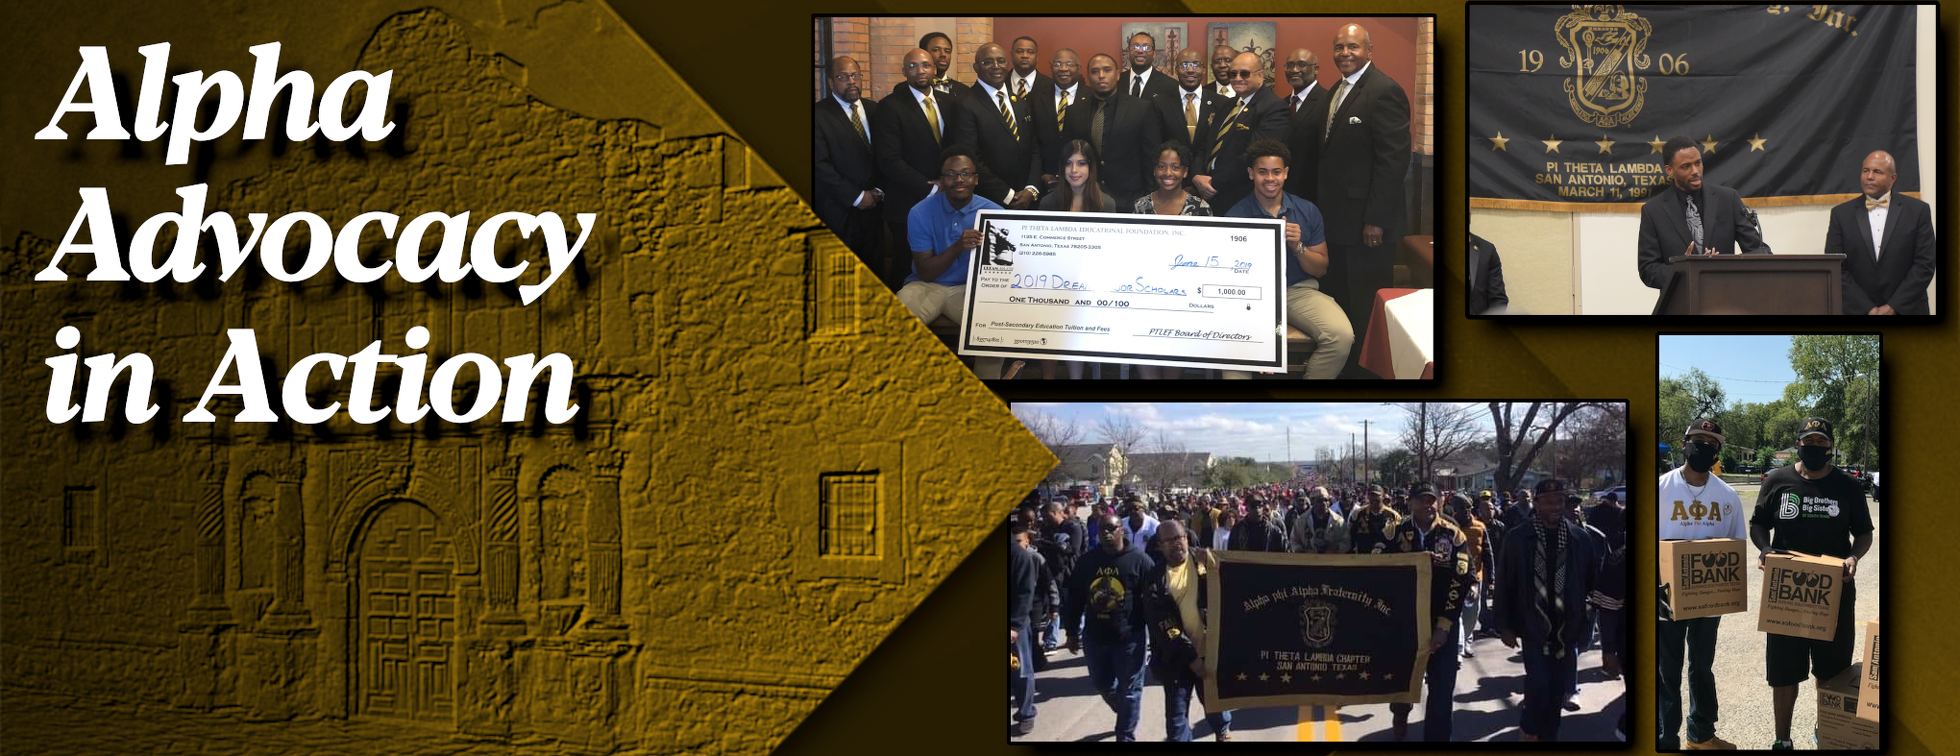 Alpha Phi Alpha Fraternity, Inc. - Pi Theta Lambda Chapter Campaign to Abolish Bexar County Medical Debt